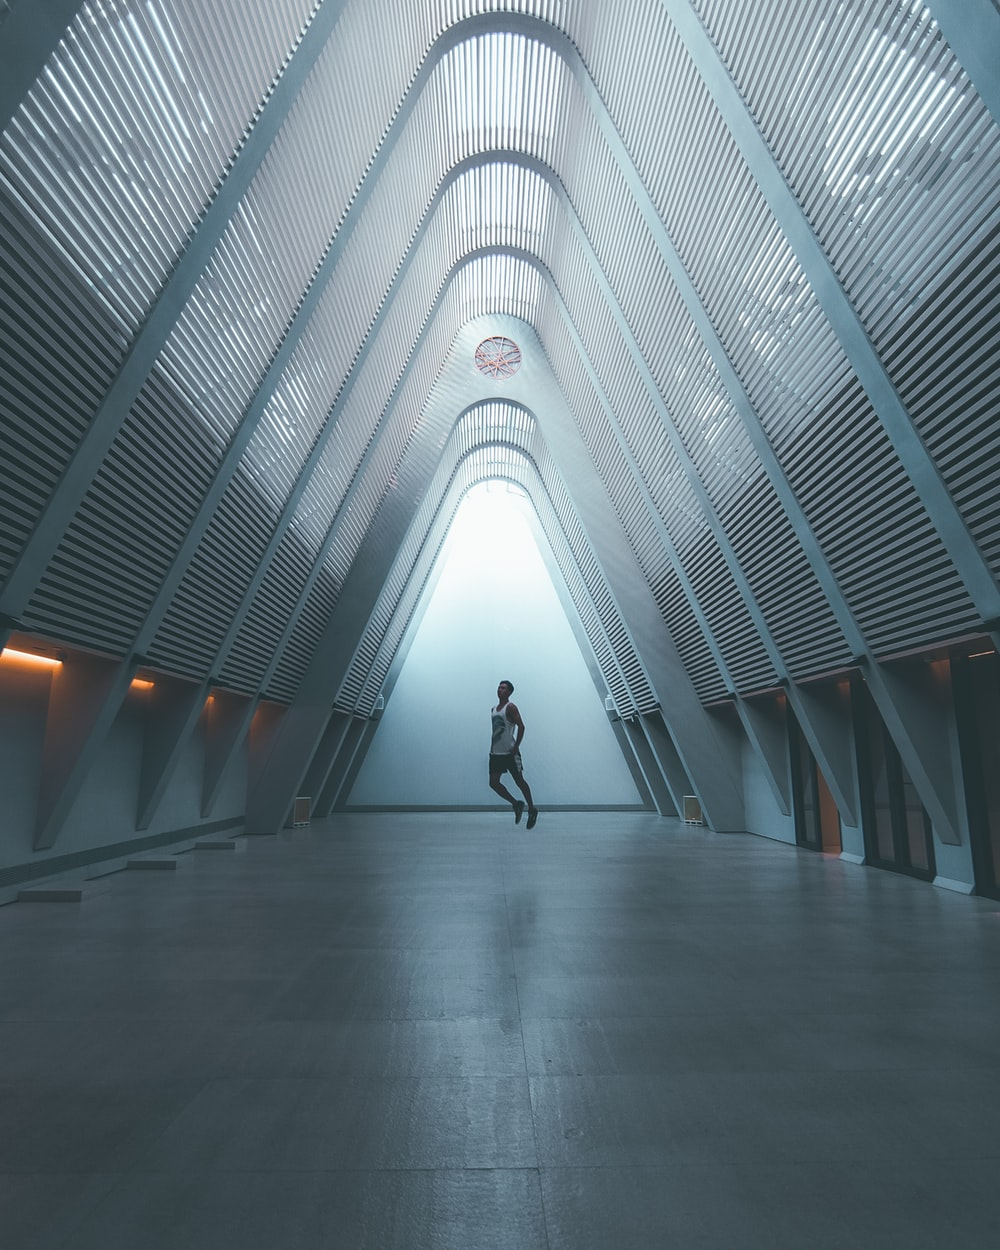 person standing inside gray metal structure